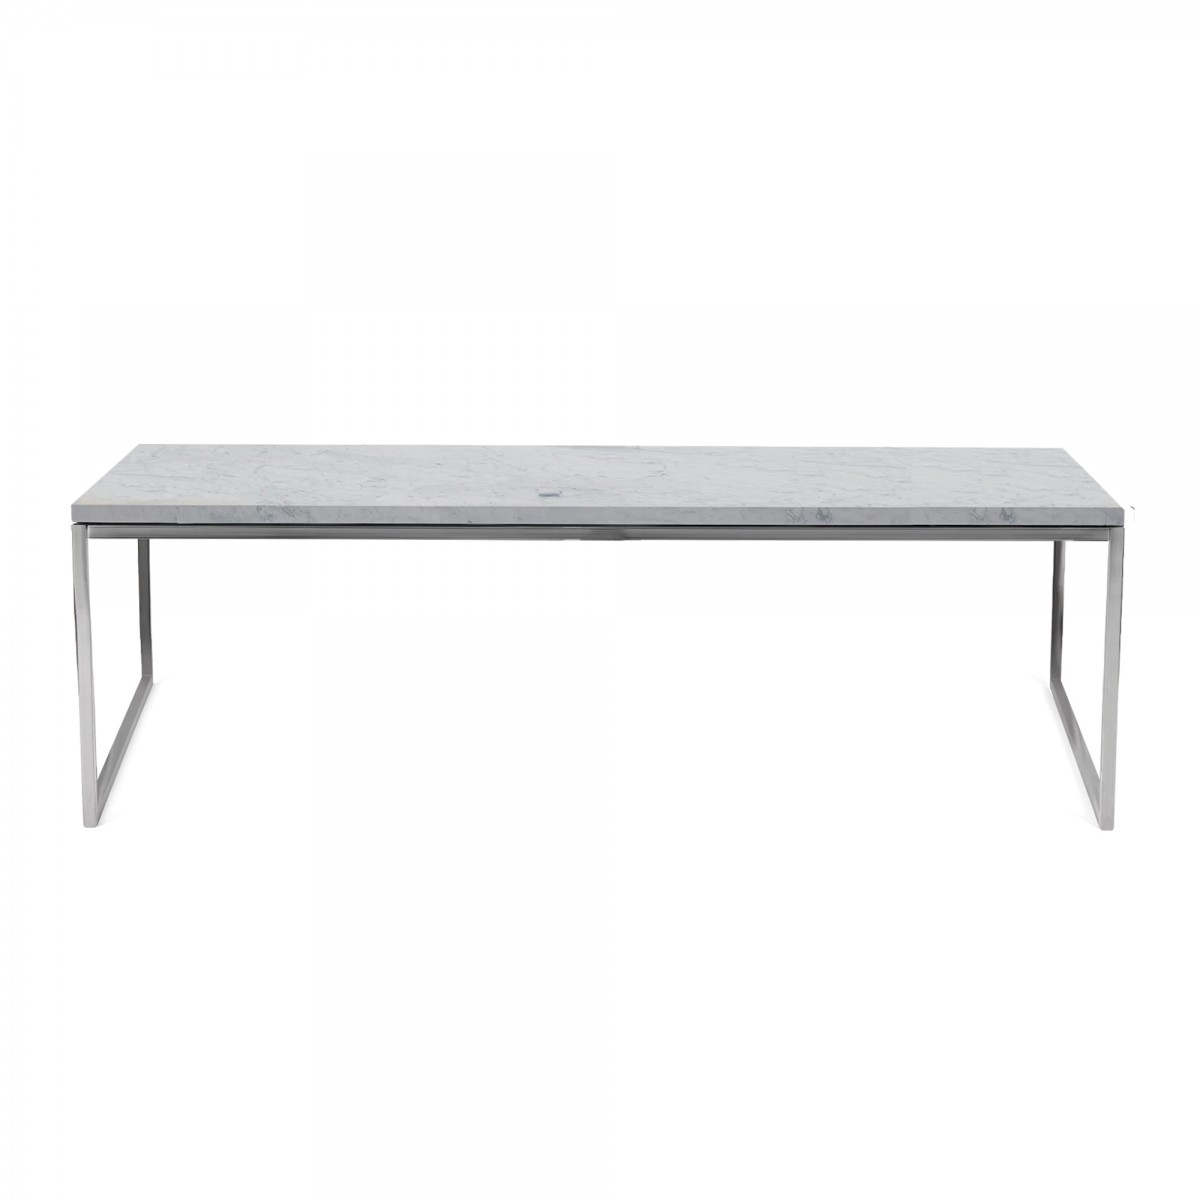 Como Coffee Table 60 X 120 In White Marble Bolia